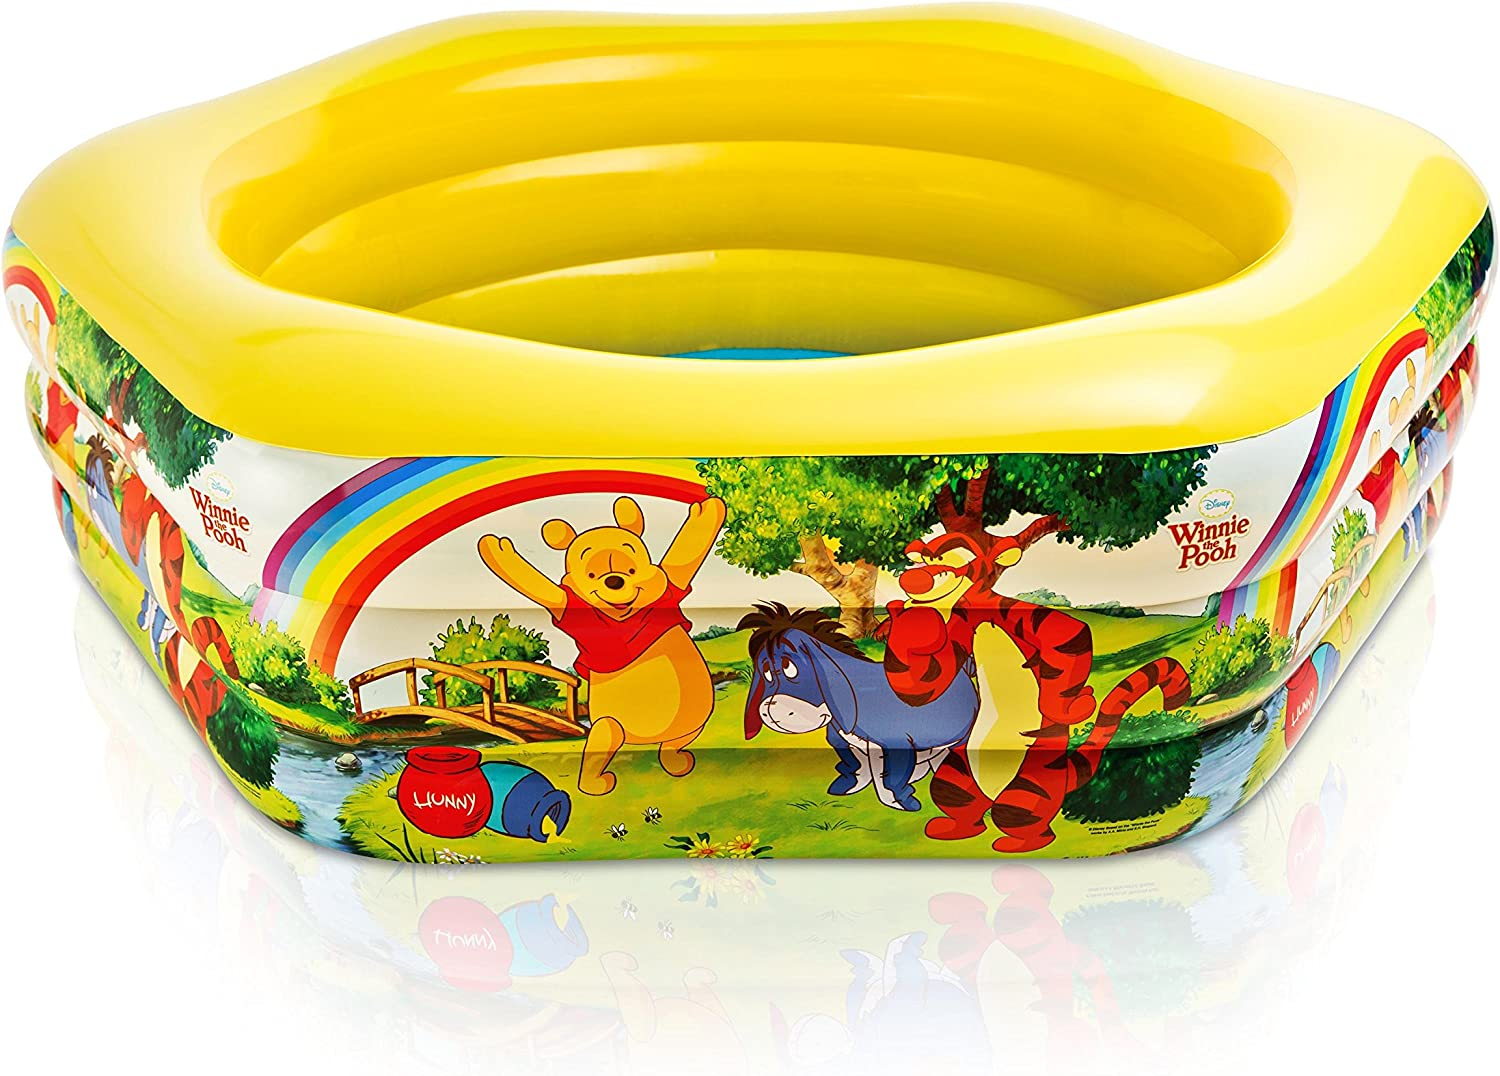 Intex - Piscina, 191 x 178 x 61 cm, 541 l, diseño tigger and pooh ...